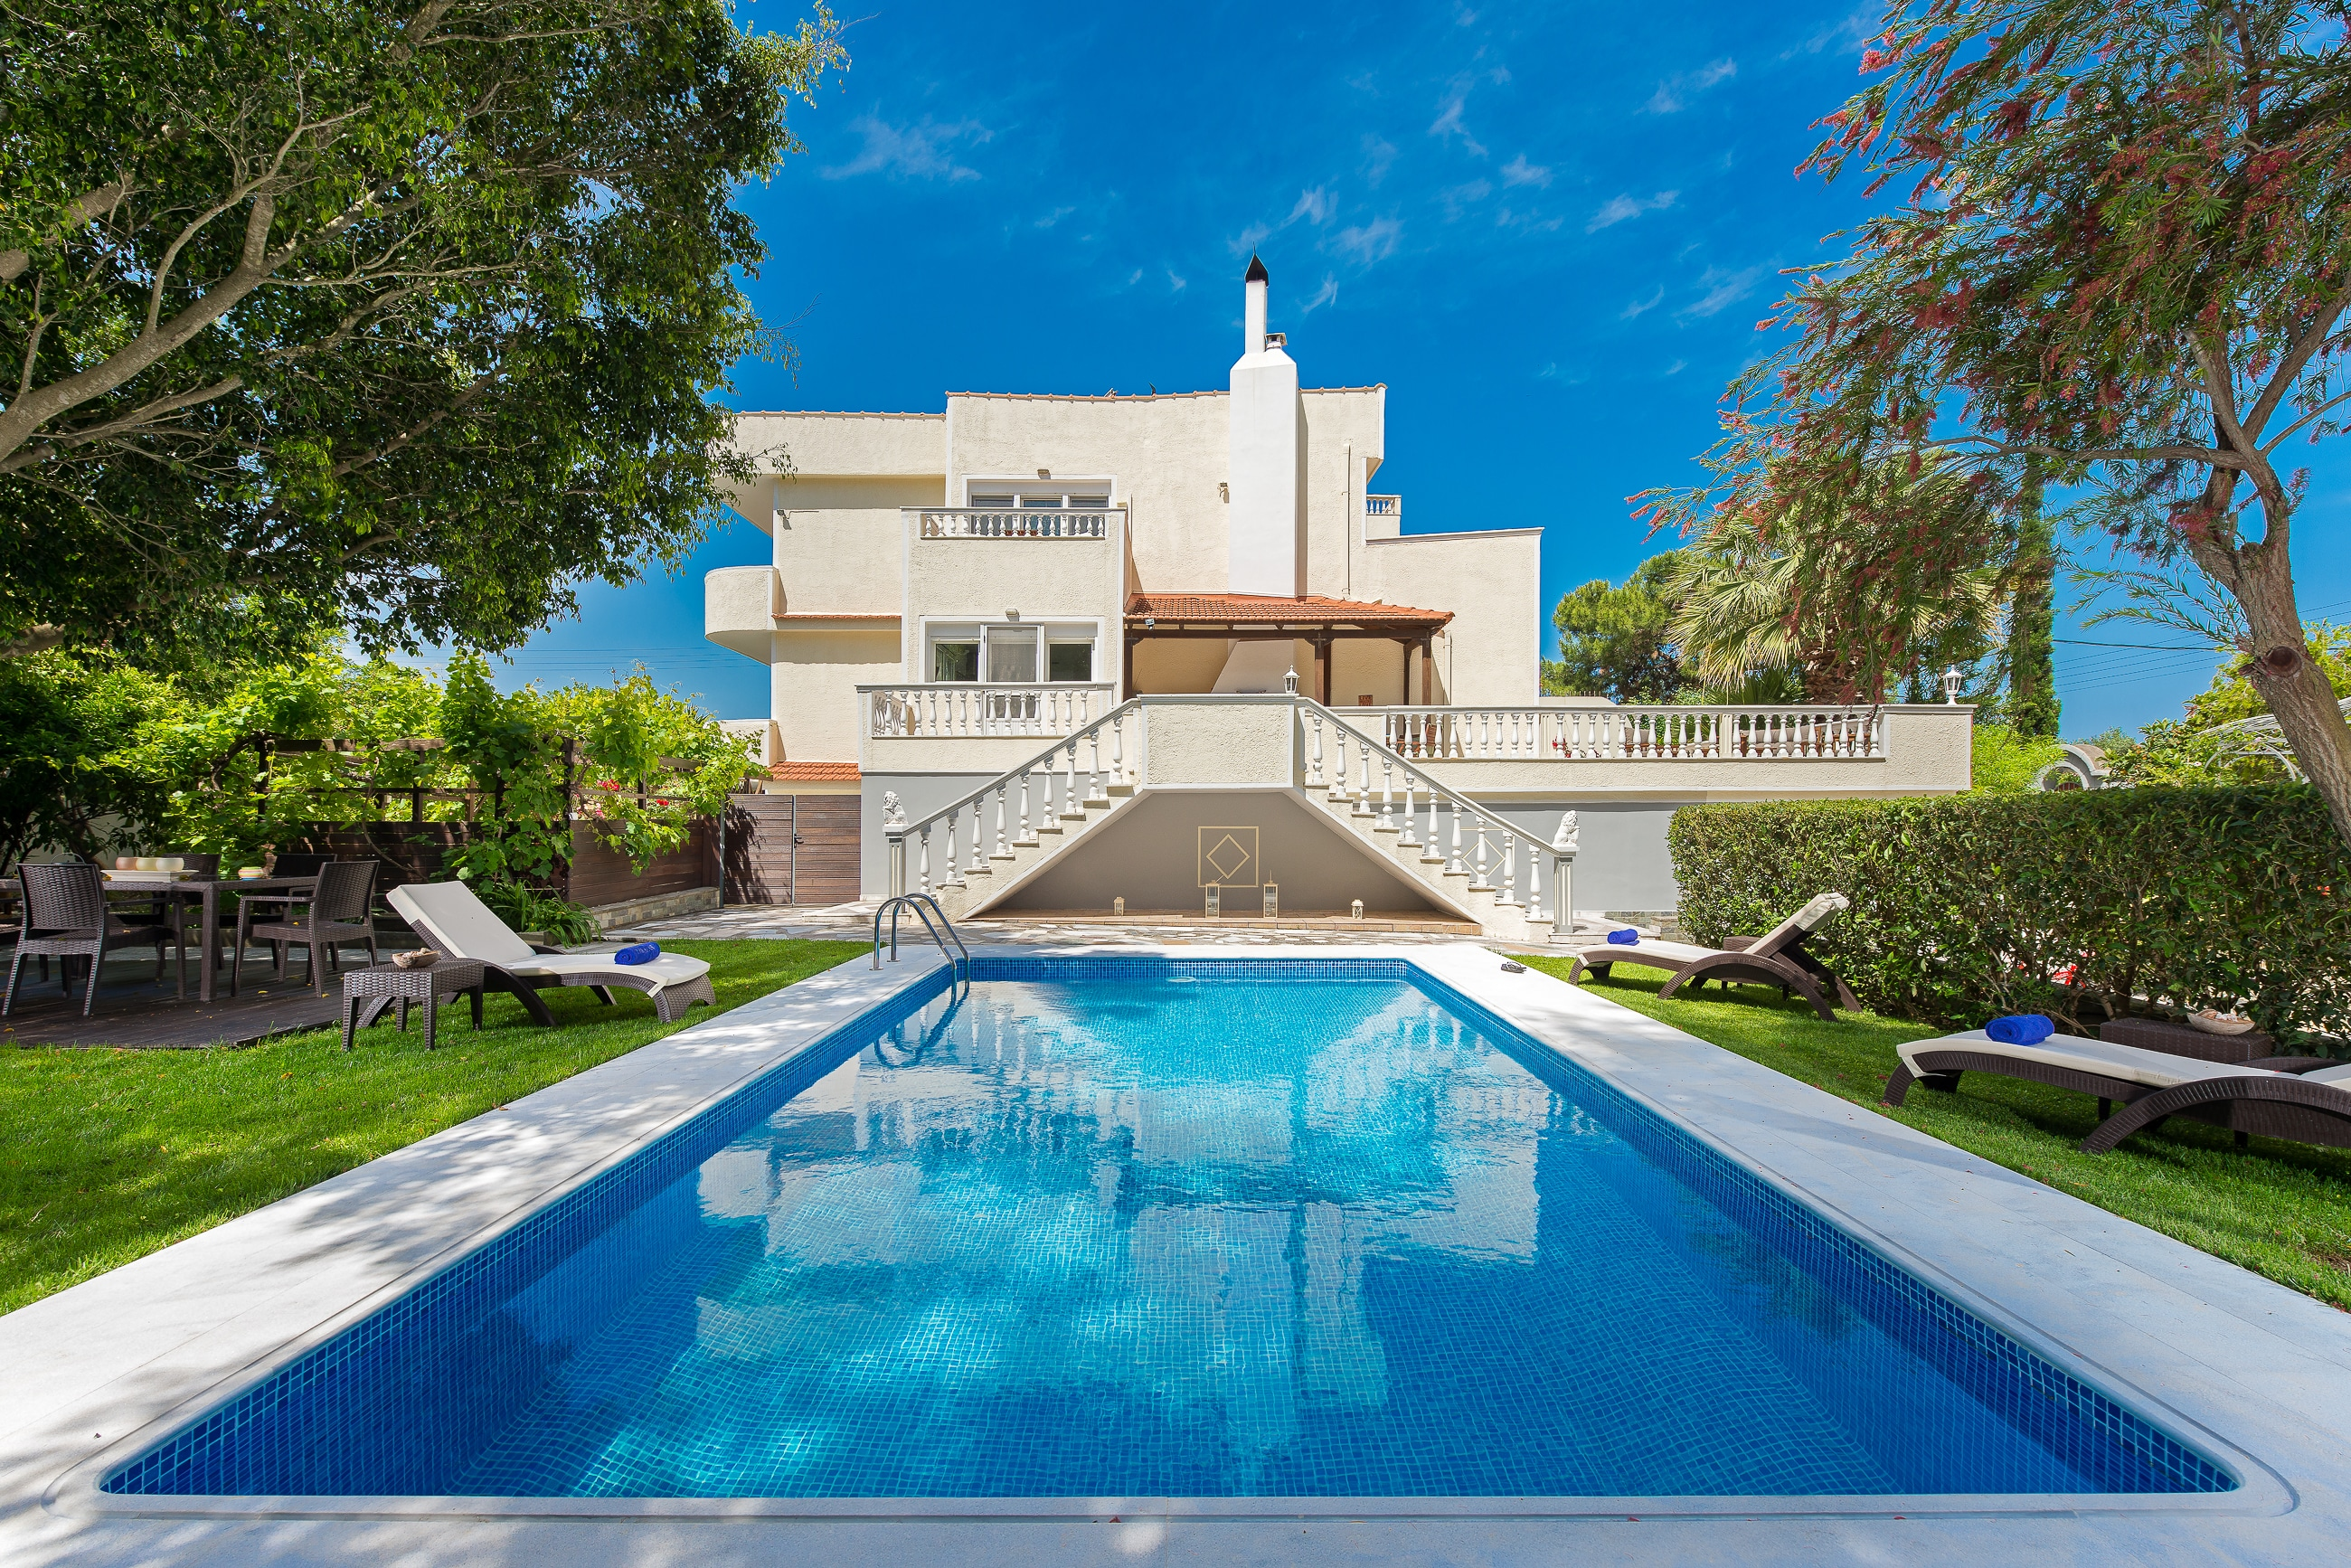 Property Image 1 - Luxurious villa with neoclassical and modern style